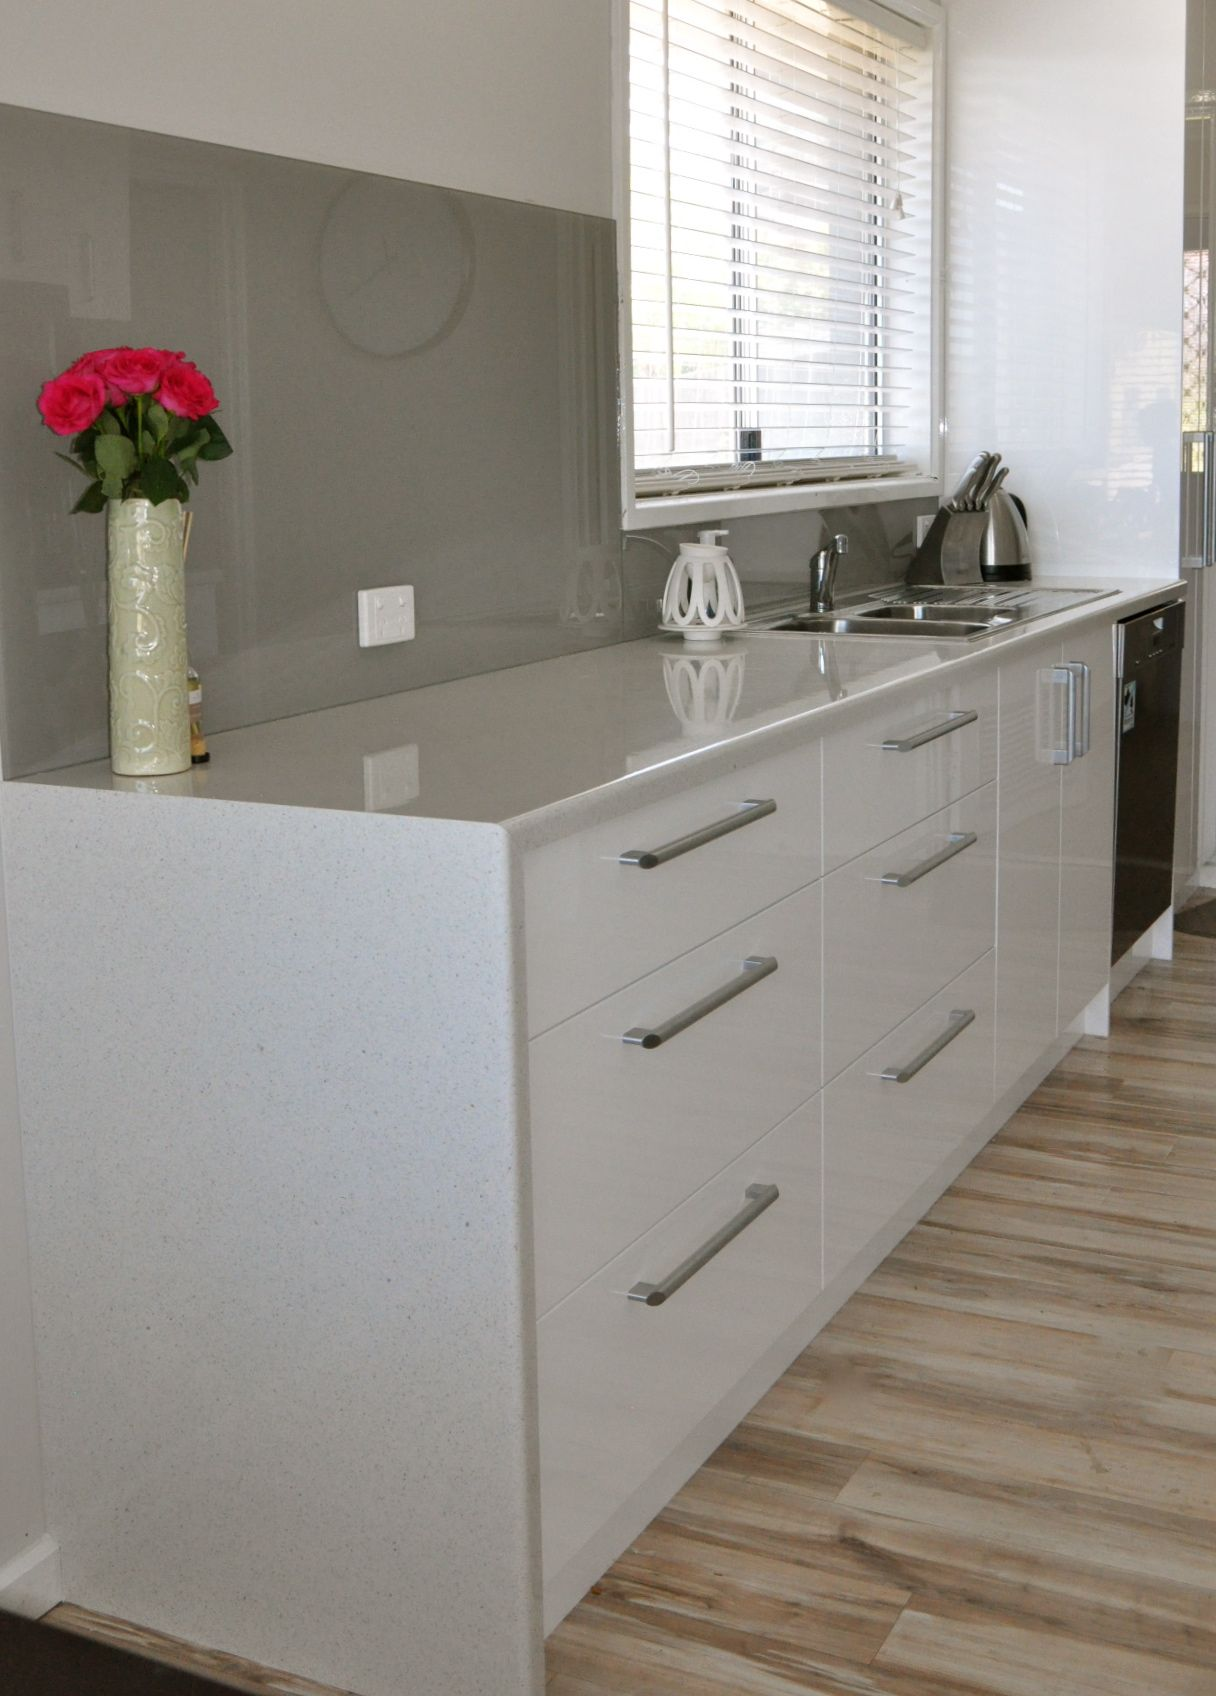 Kitchen Laminate Benchtops Waterfall Edge With A Laminate Bench Top Can Be A More